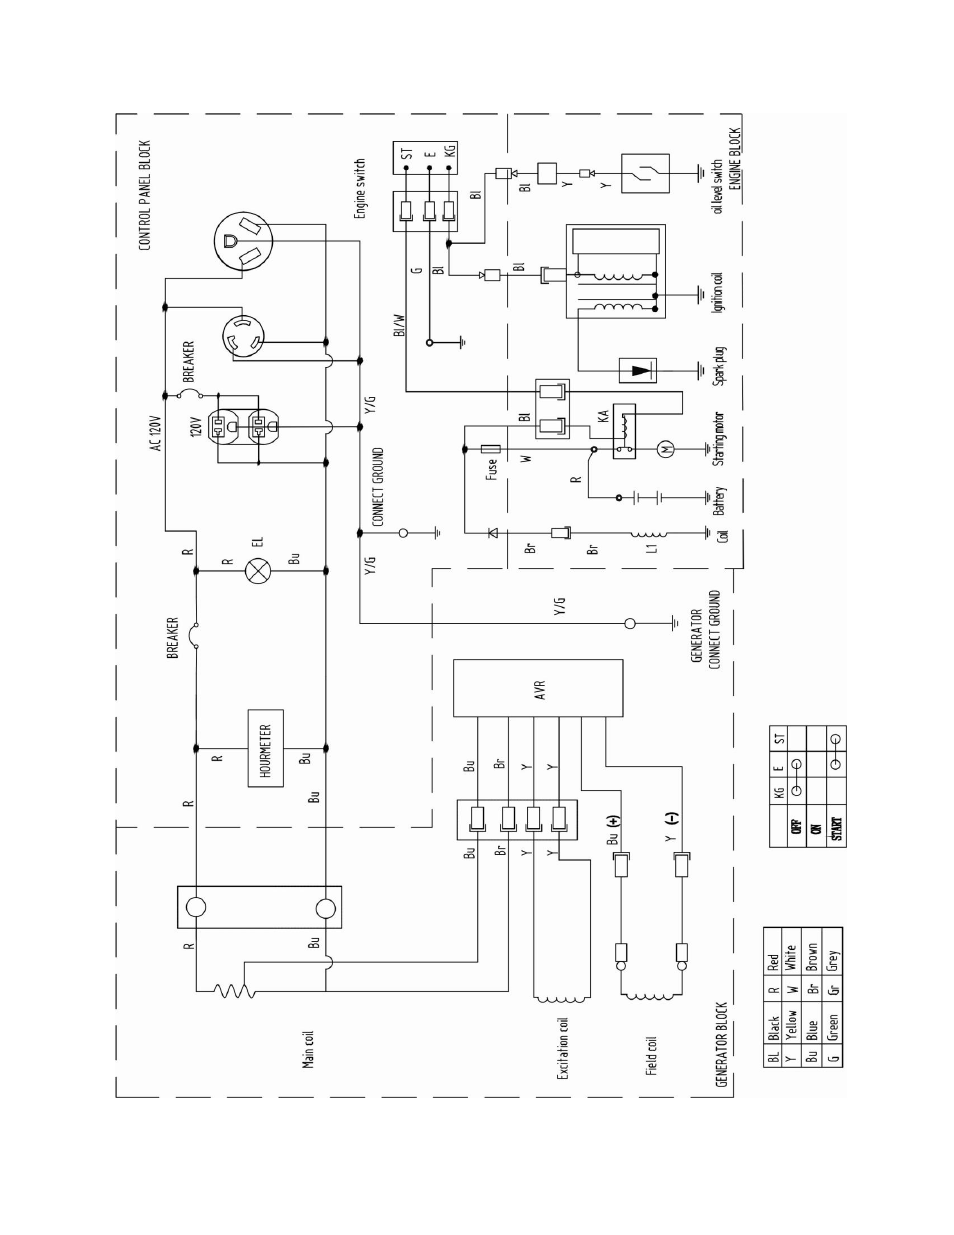 wiring library page 35 mylespaulcom